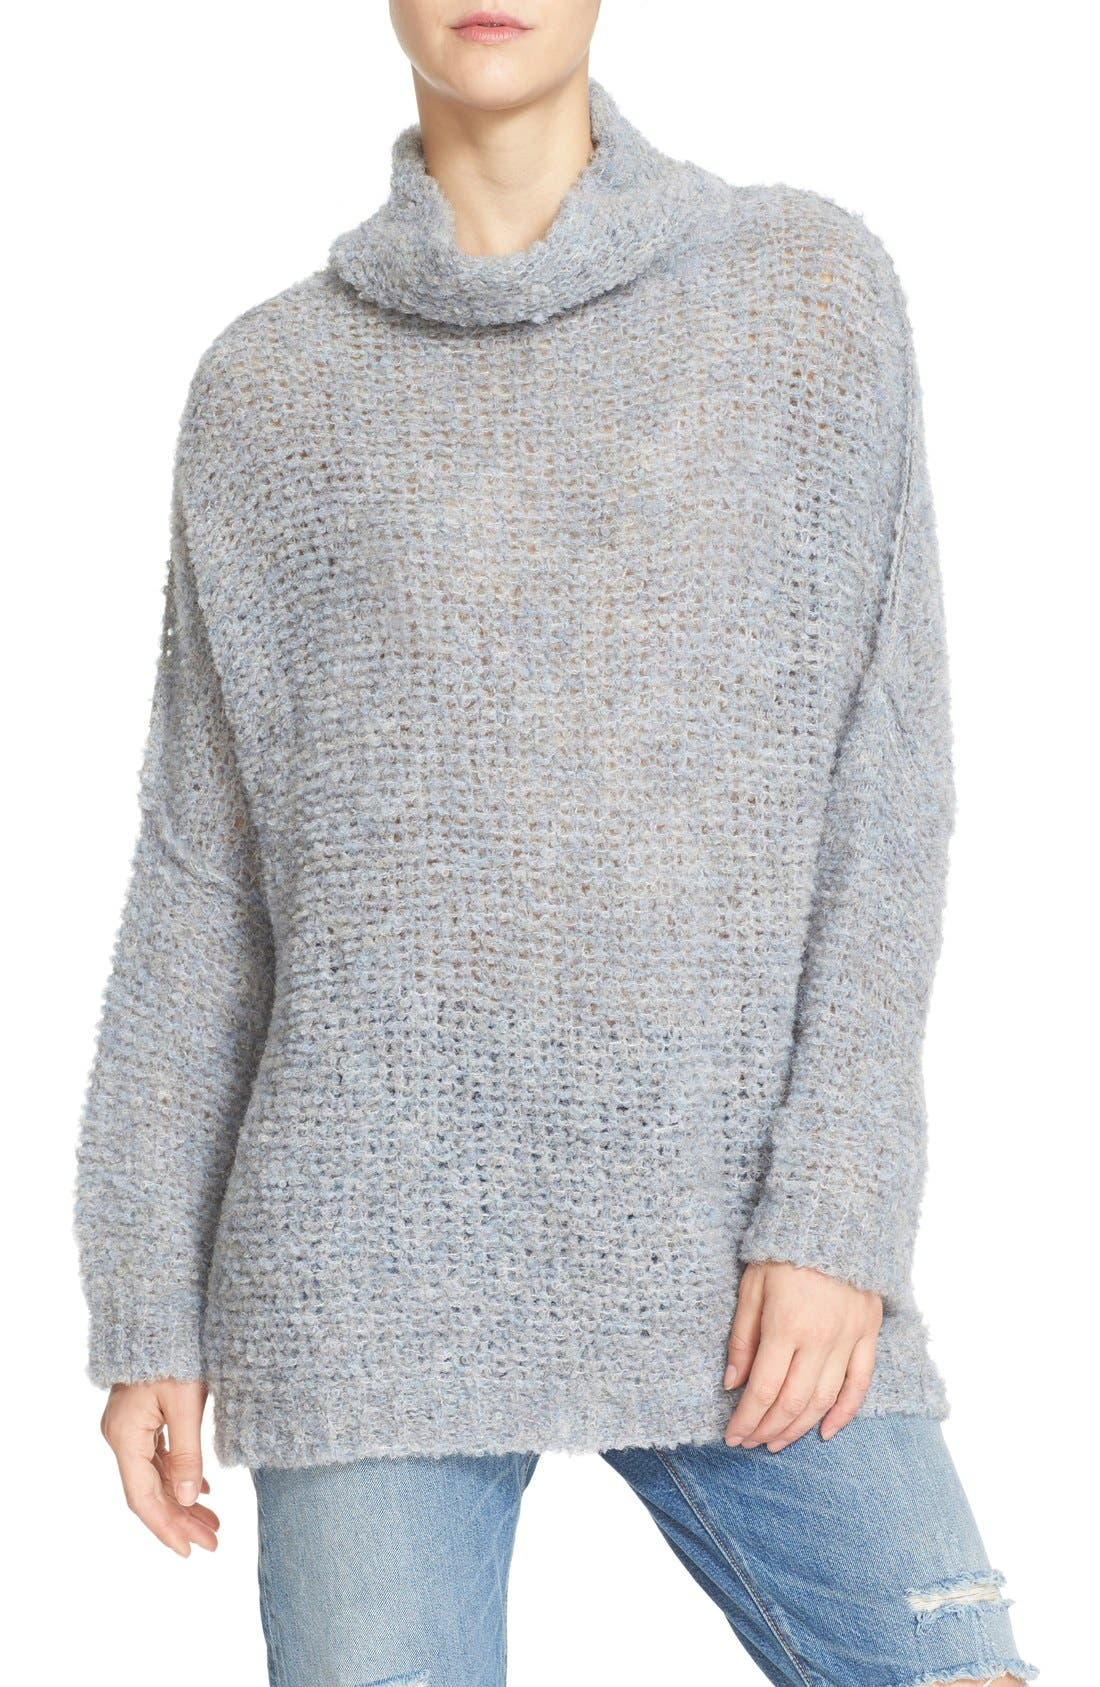 'She's All That' Knit Turtleneck Sweater,                             Alternate thumbnail 23, color,